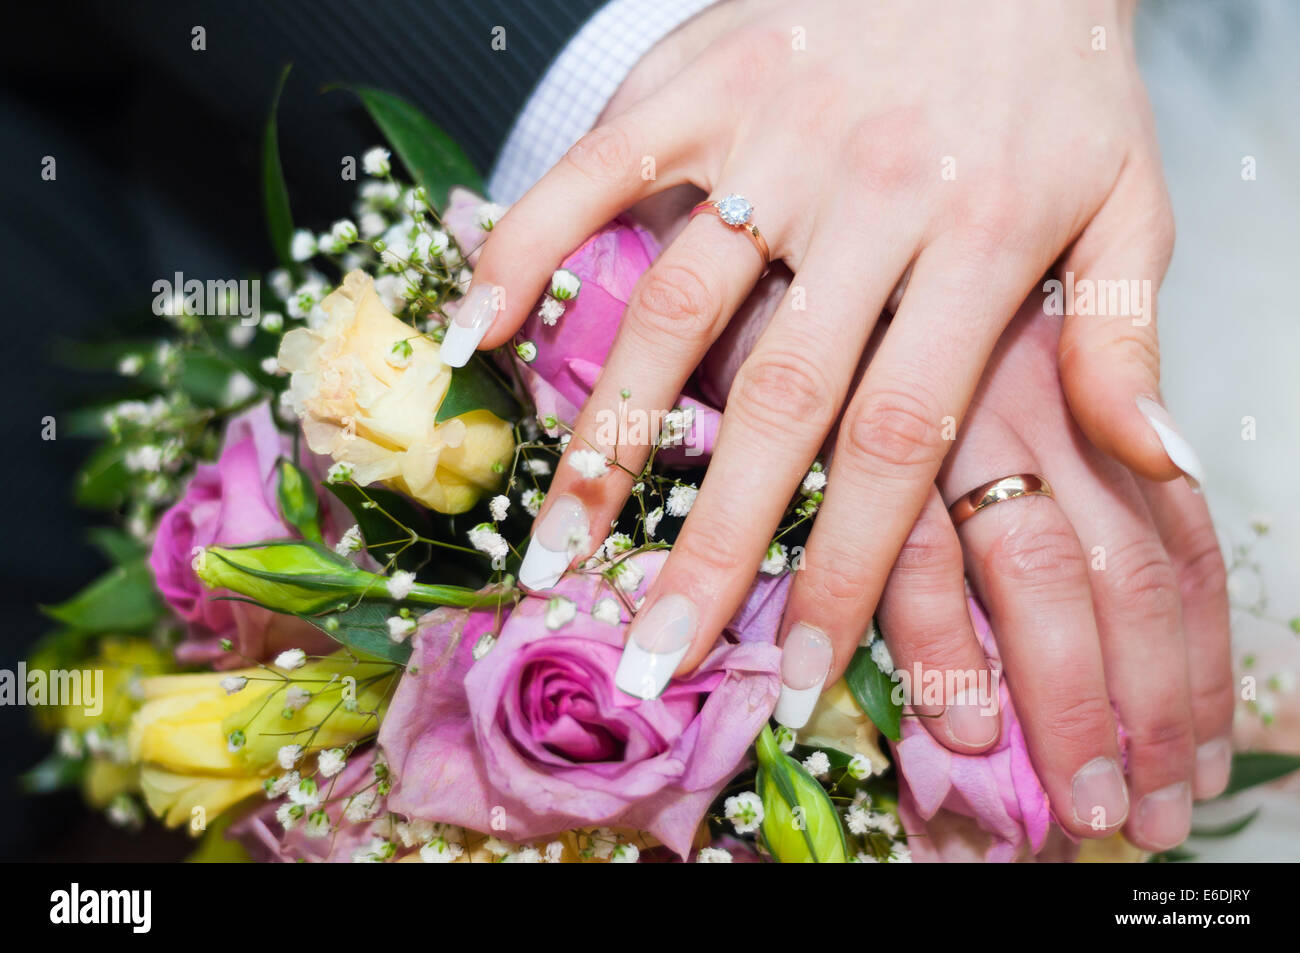 Engagement Rings Stock Photos & Engagement Rings Stock Images - Alamy